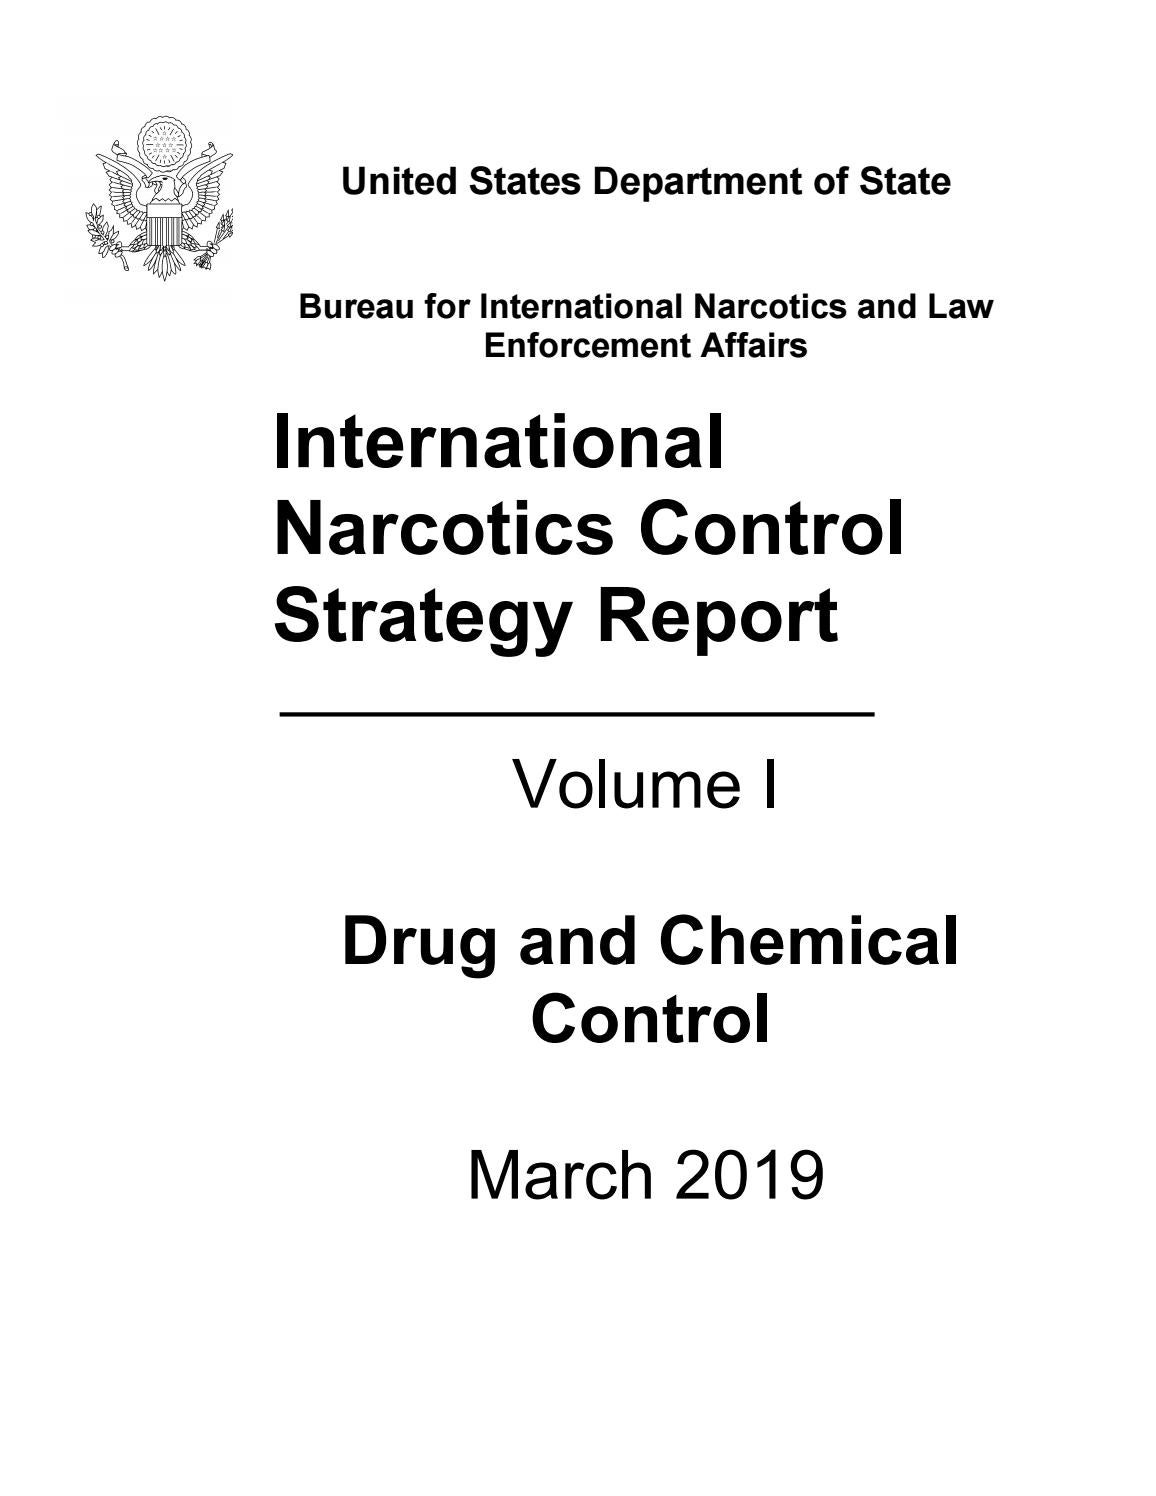 The 2019 International Narcotics Control Strategy Report